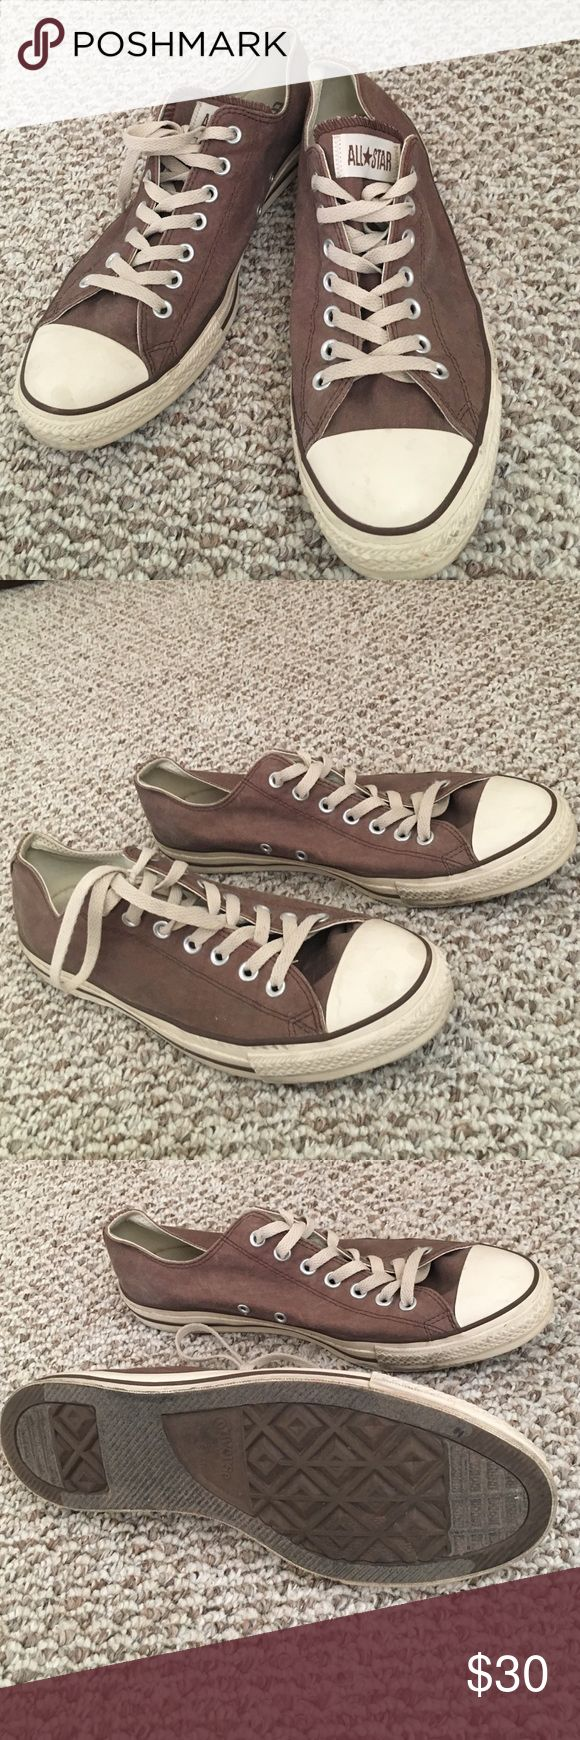 Converse All Star (low tops). Brown converse size 11. The style is vintage brown. Worn 3 times! Converse Shoes Athletic Shoes